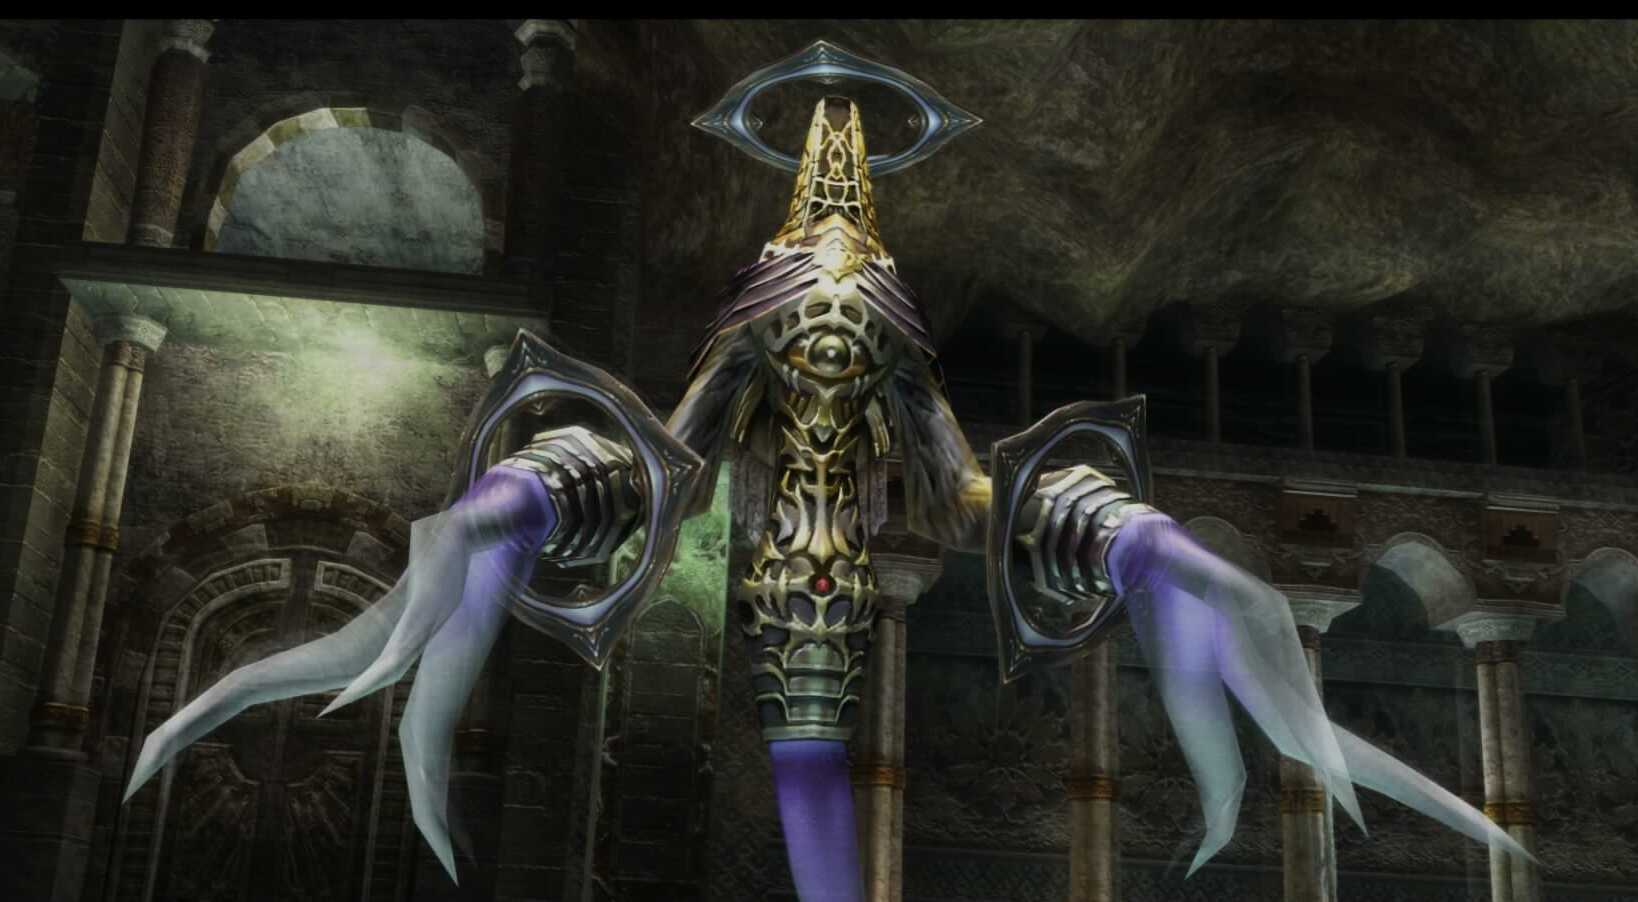 FF XII Ahriman